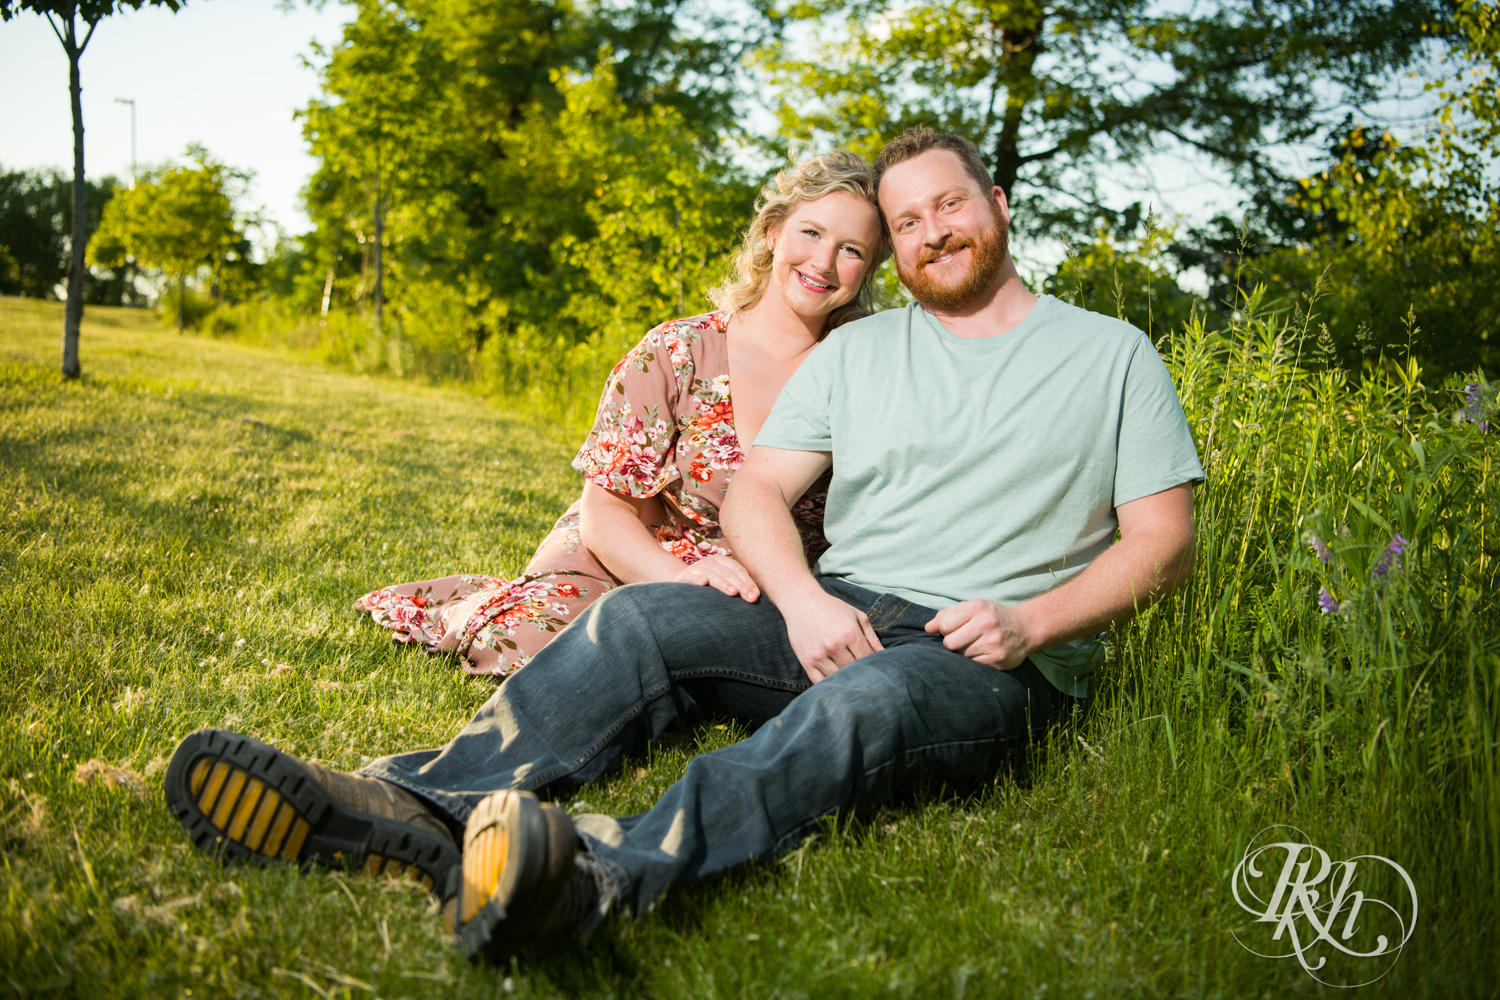 Constance & Josh - Minnesota Engagement Photography - Lebanon Hills Regional Park - RKH Images - Blog (6 of 18).jpg